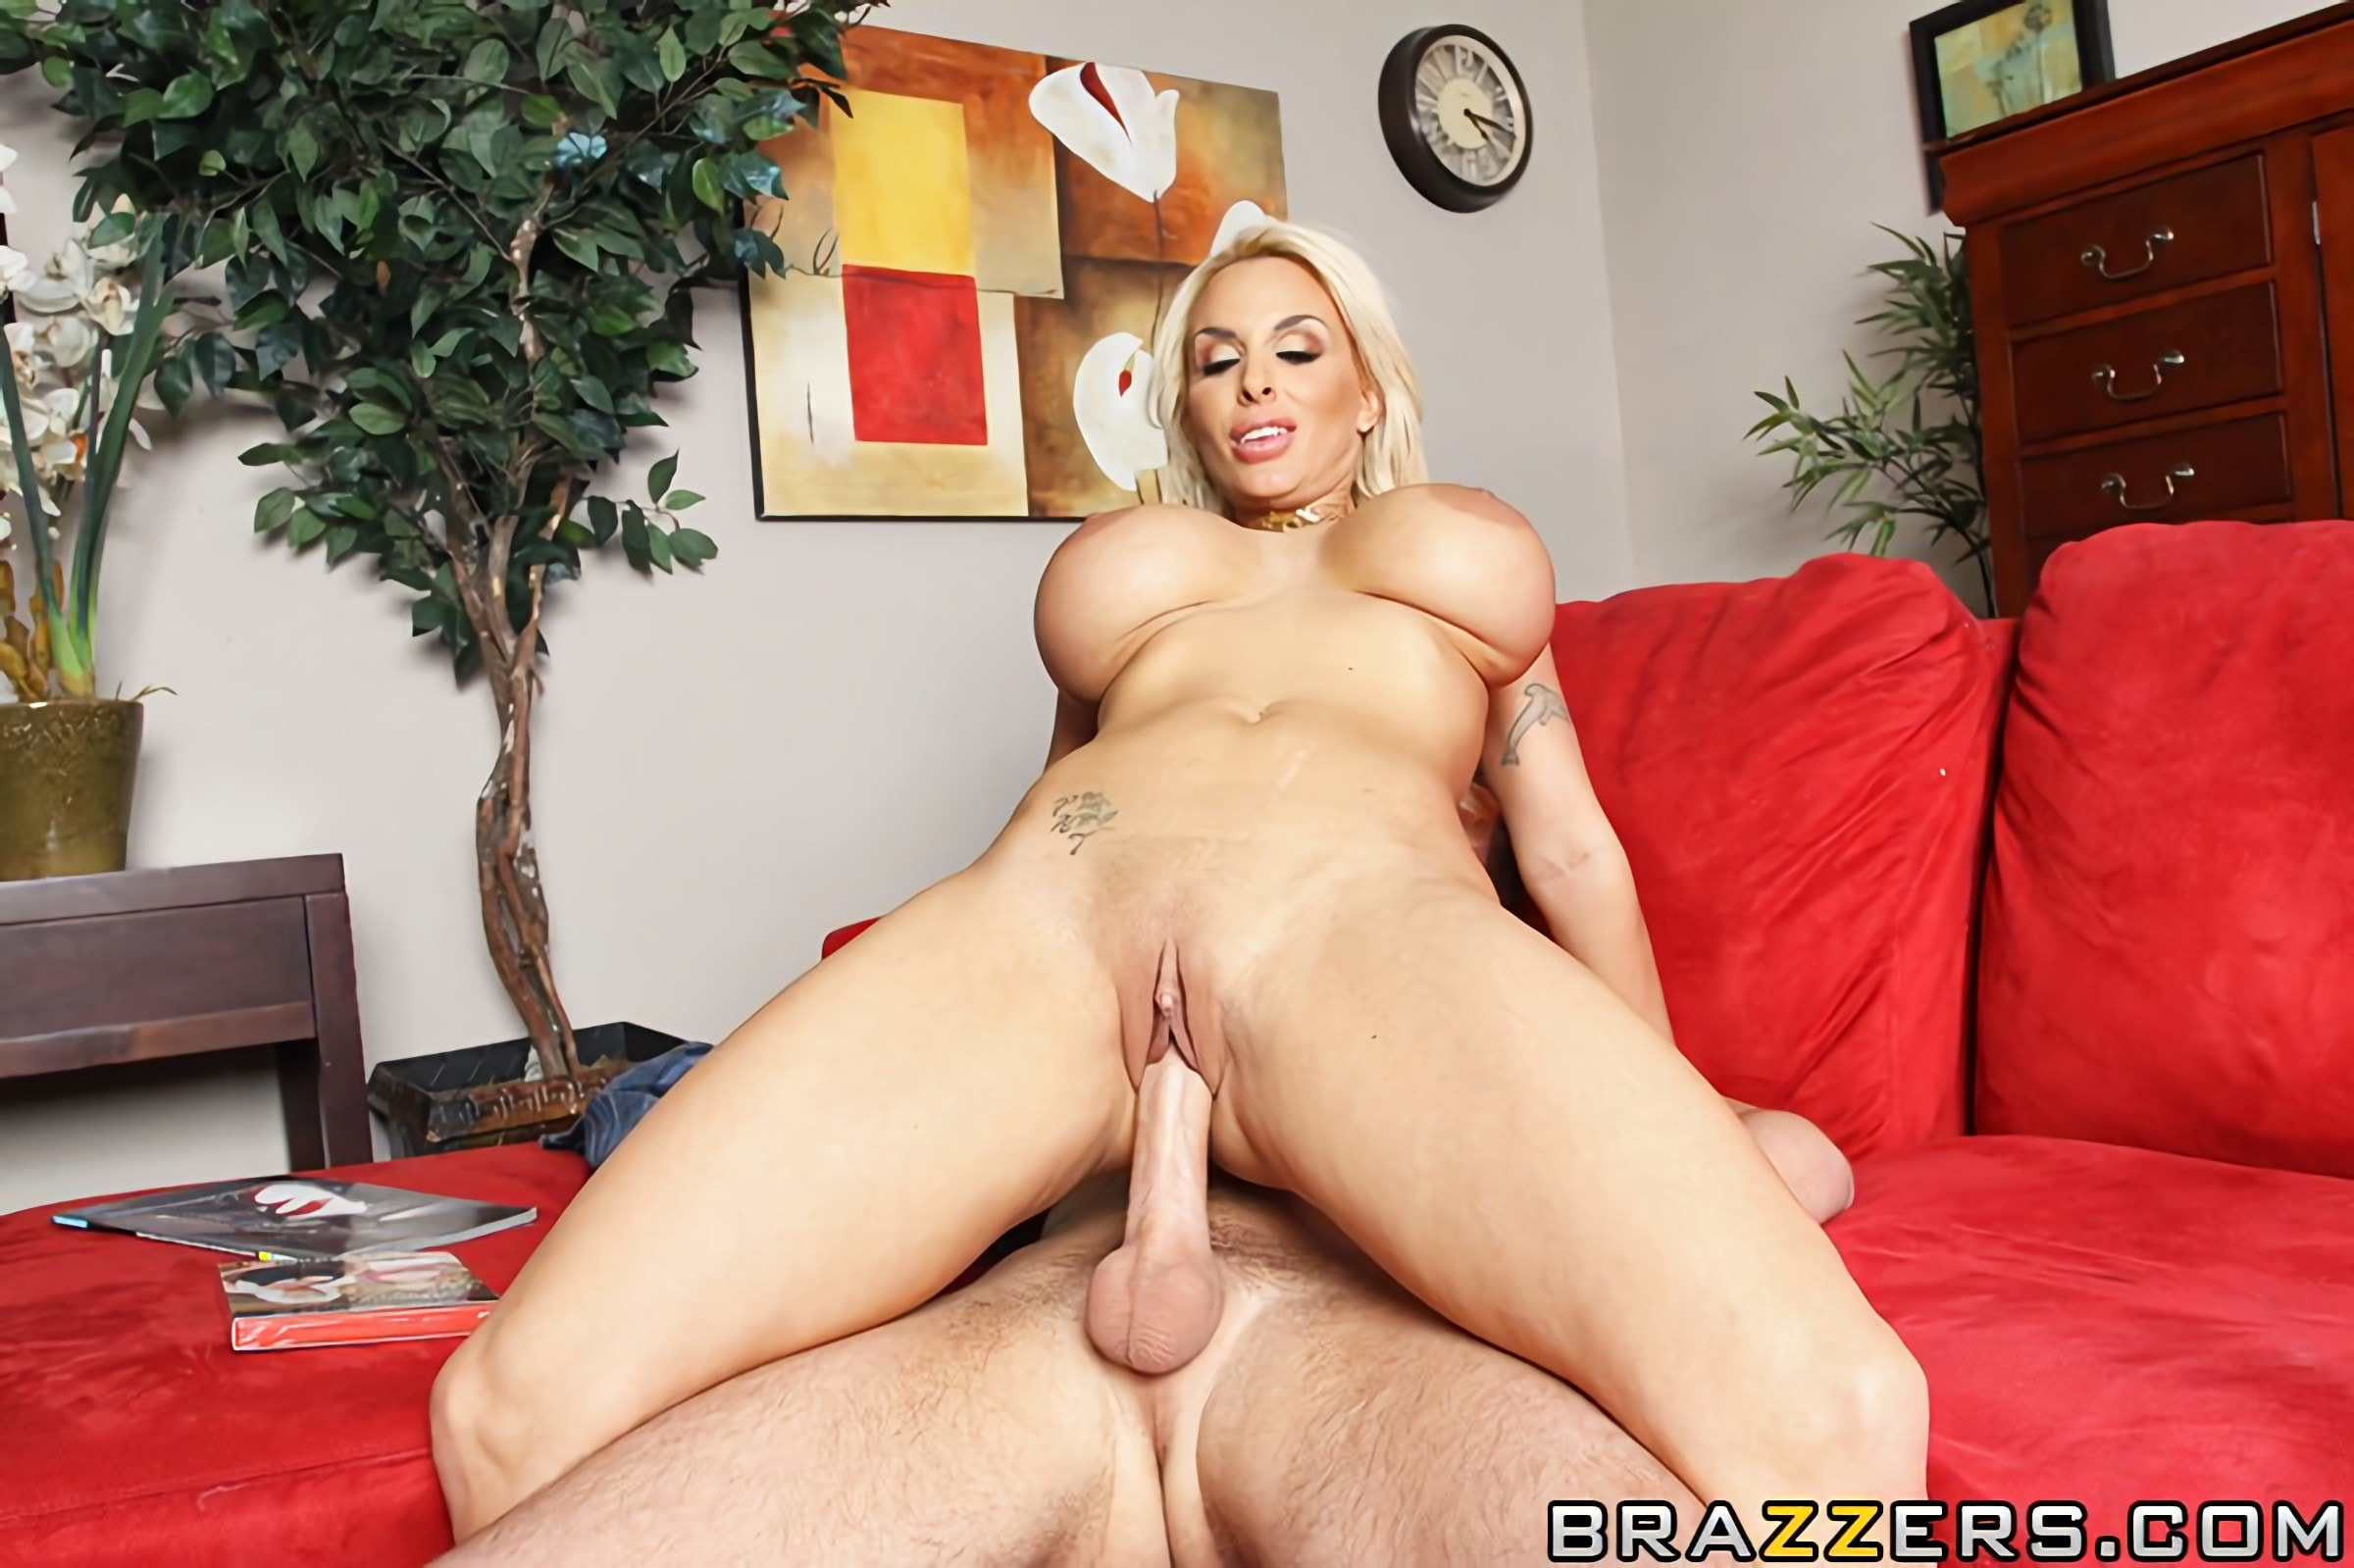 Myfriendshotmom holly halston fatbutt suck fucked together free pornpics sexphotos xxximages hq gallery